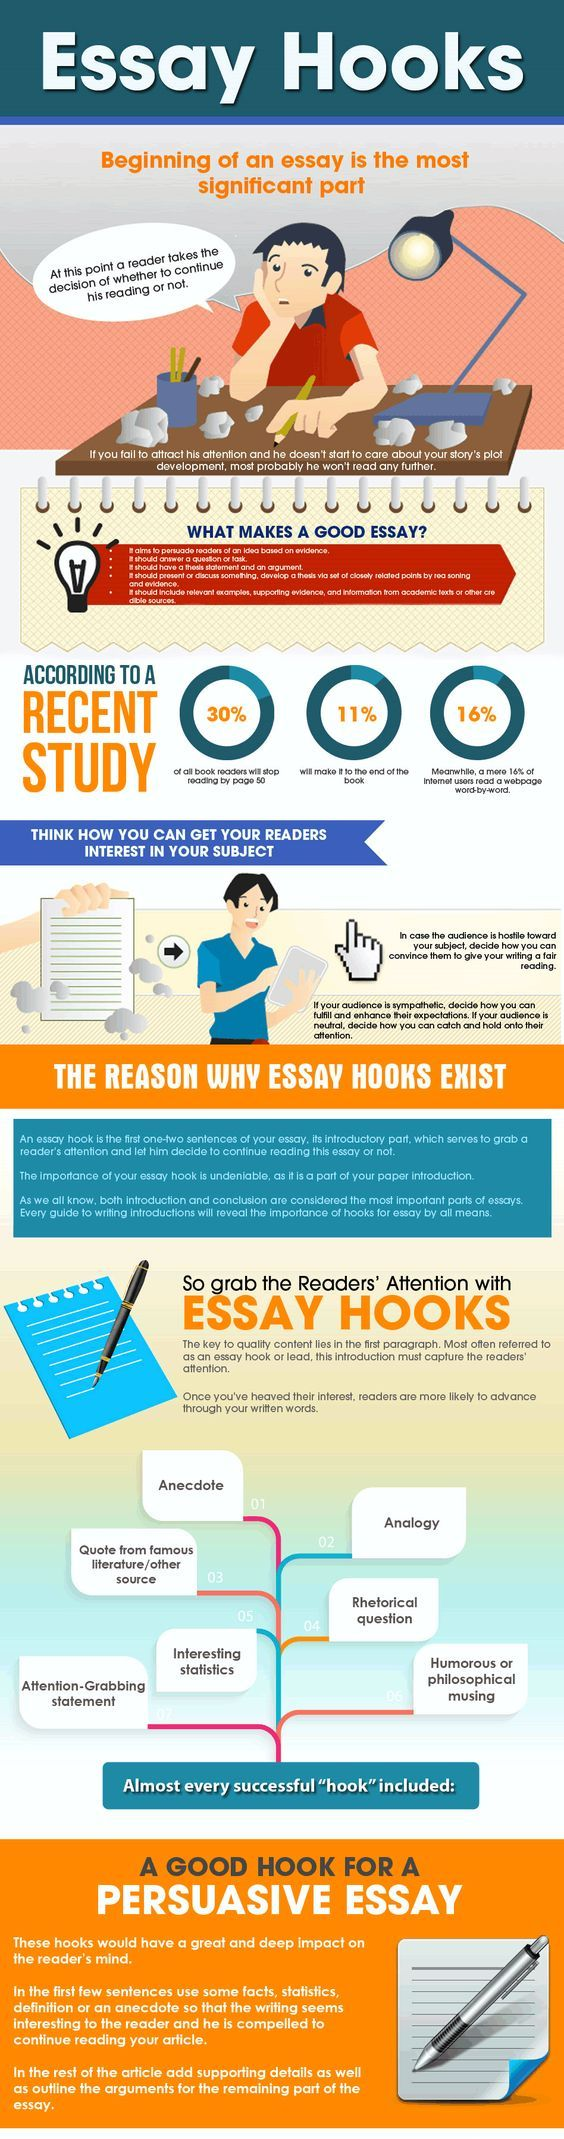 Argumentative essay advertisement essay examples